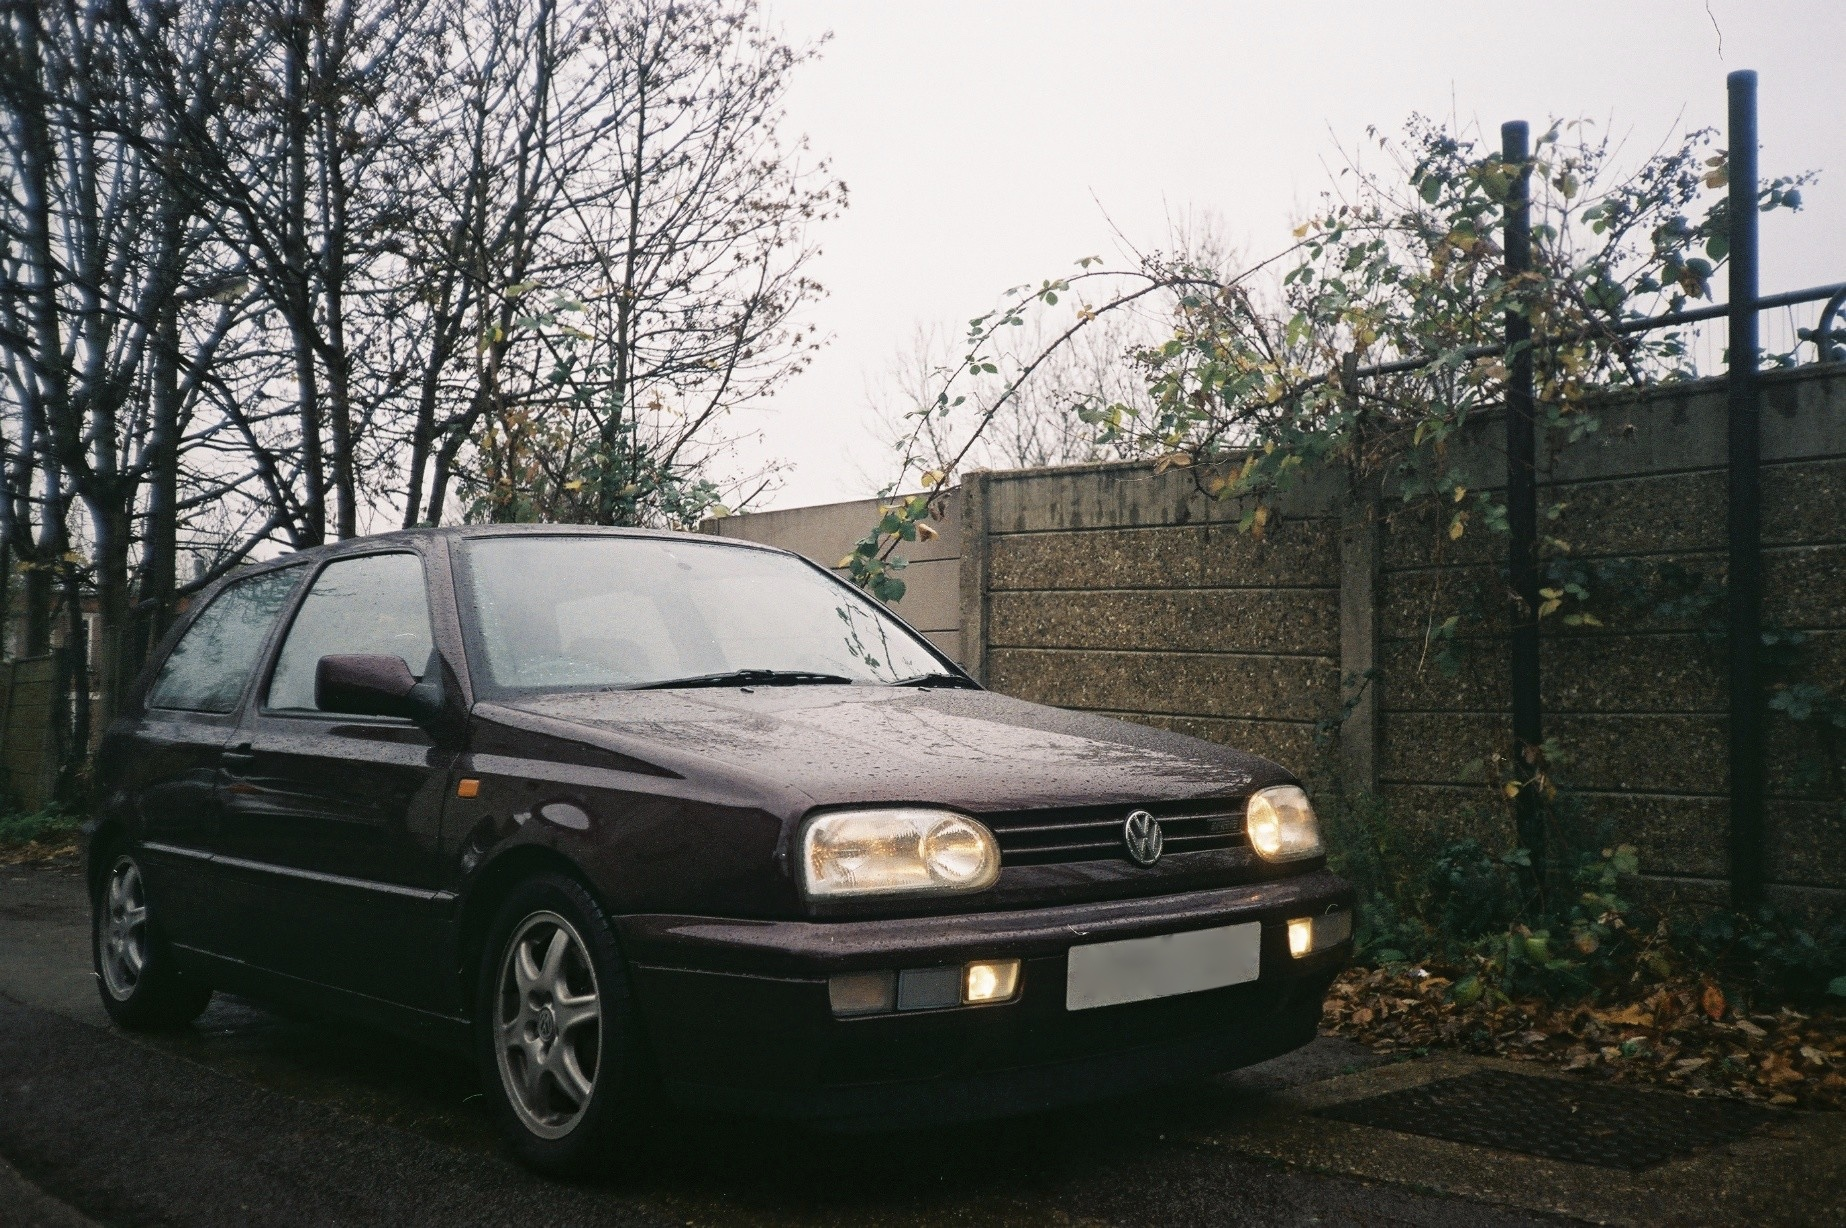 Golf Mk3 in Mulberry.